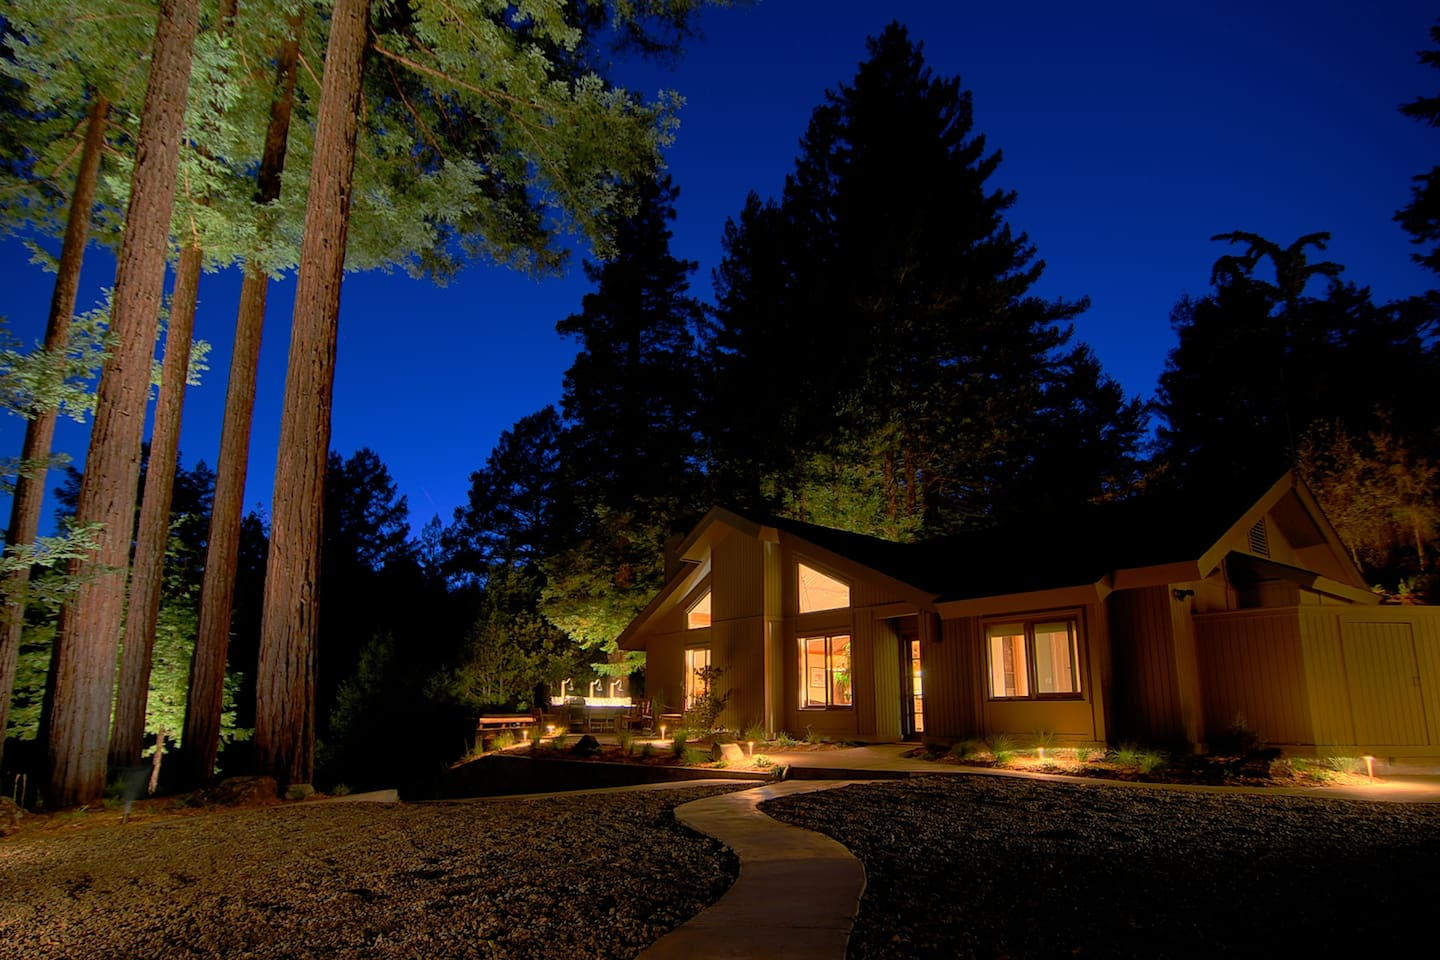 Elements at night is striking, the landscape and lighting blend with nature.